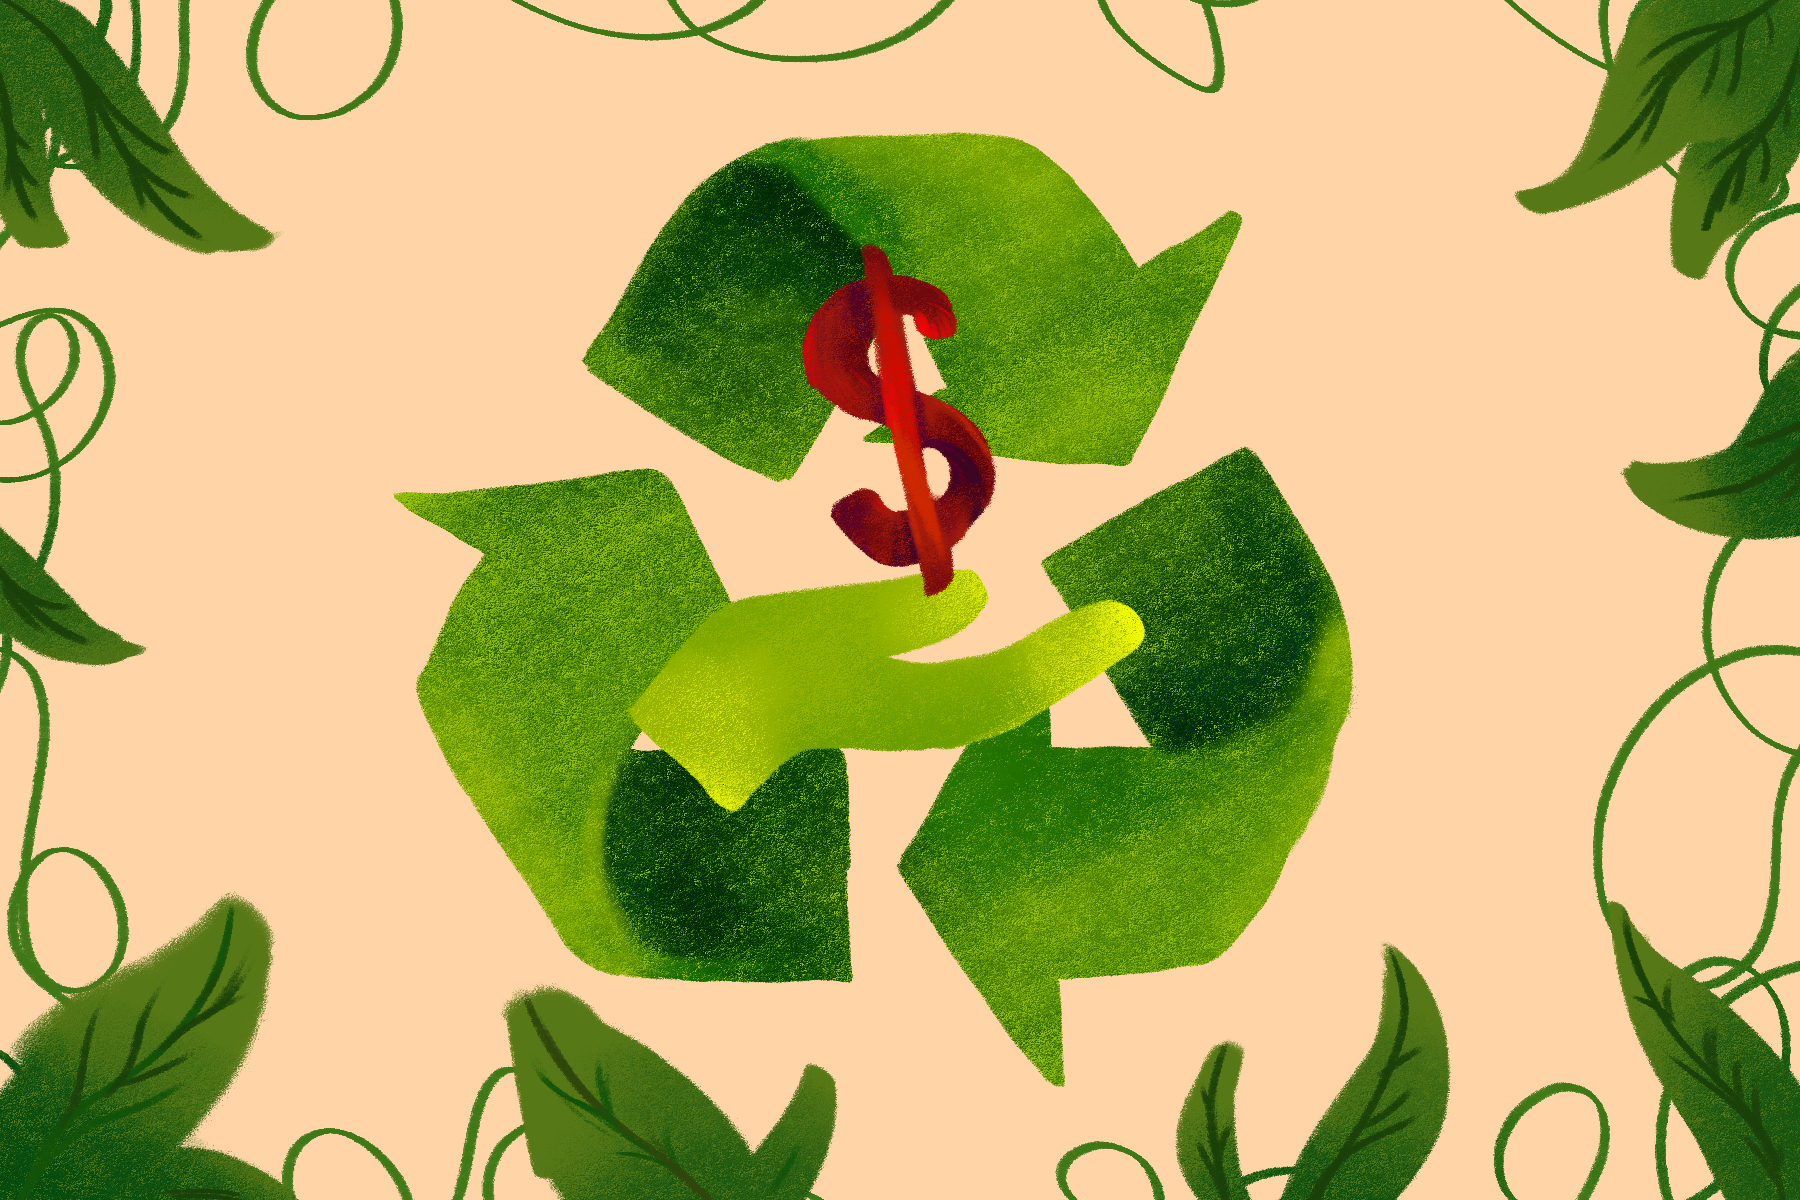 Illustration by Lucas DeJesus for an article on sustainability